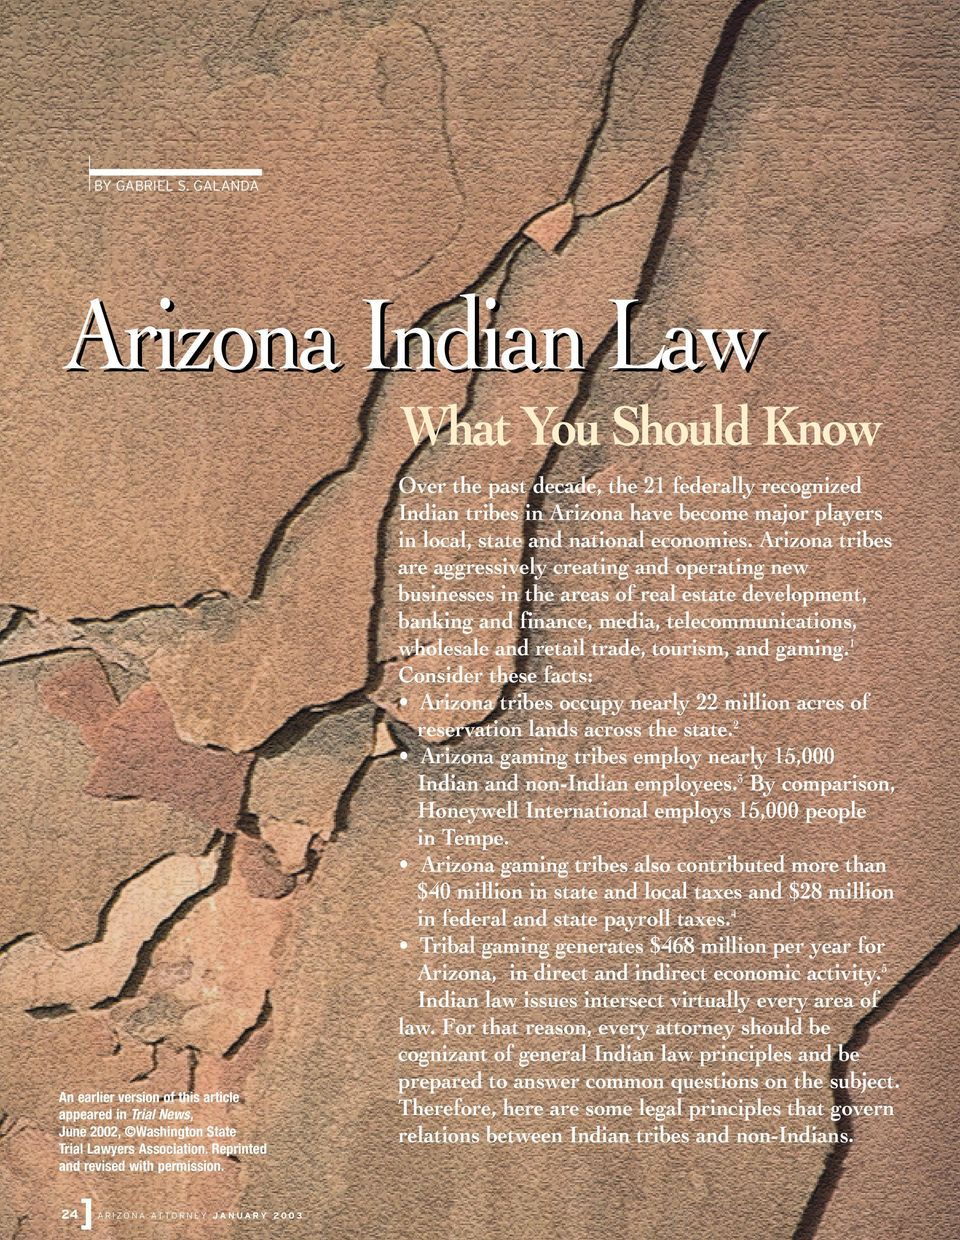 24 A R I Z O N A AT T O R N E Y J A N U A R Y 2 0 0 3 Over the past decade, the 21 federally recognized Indian tribes in Arizona have become major players in local, state and national economies.